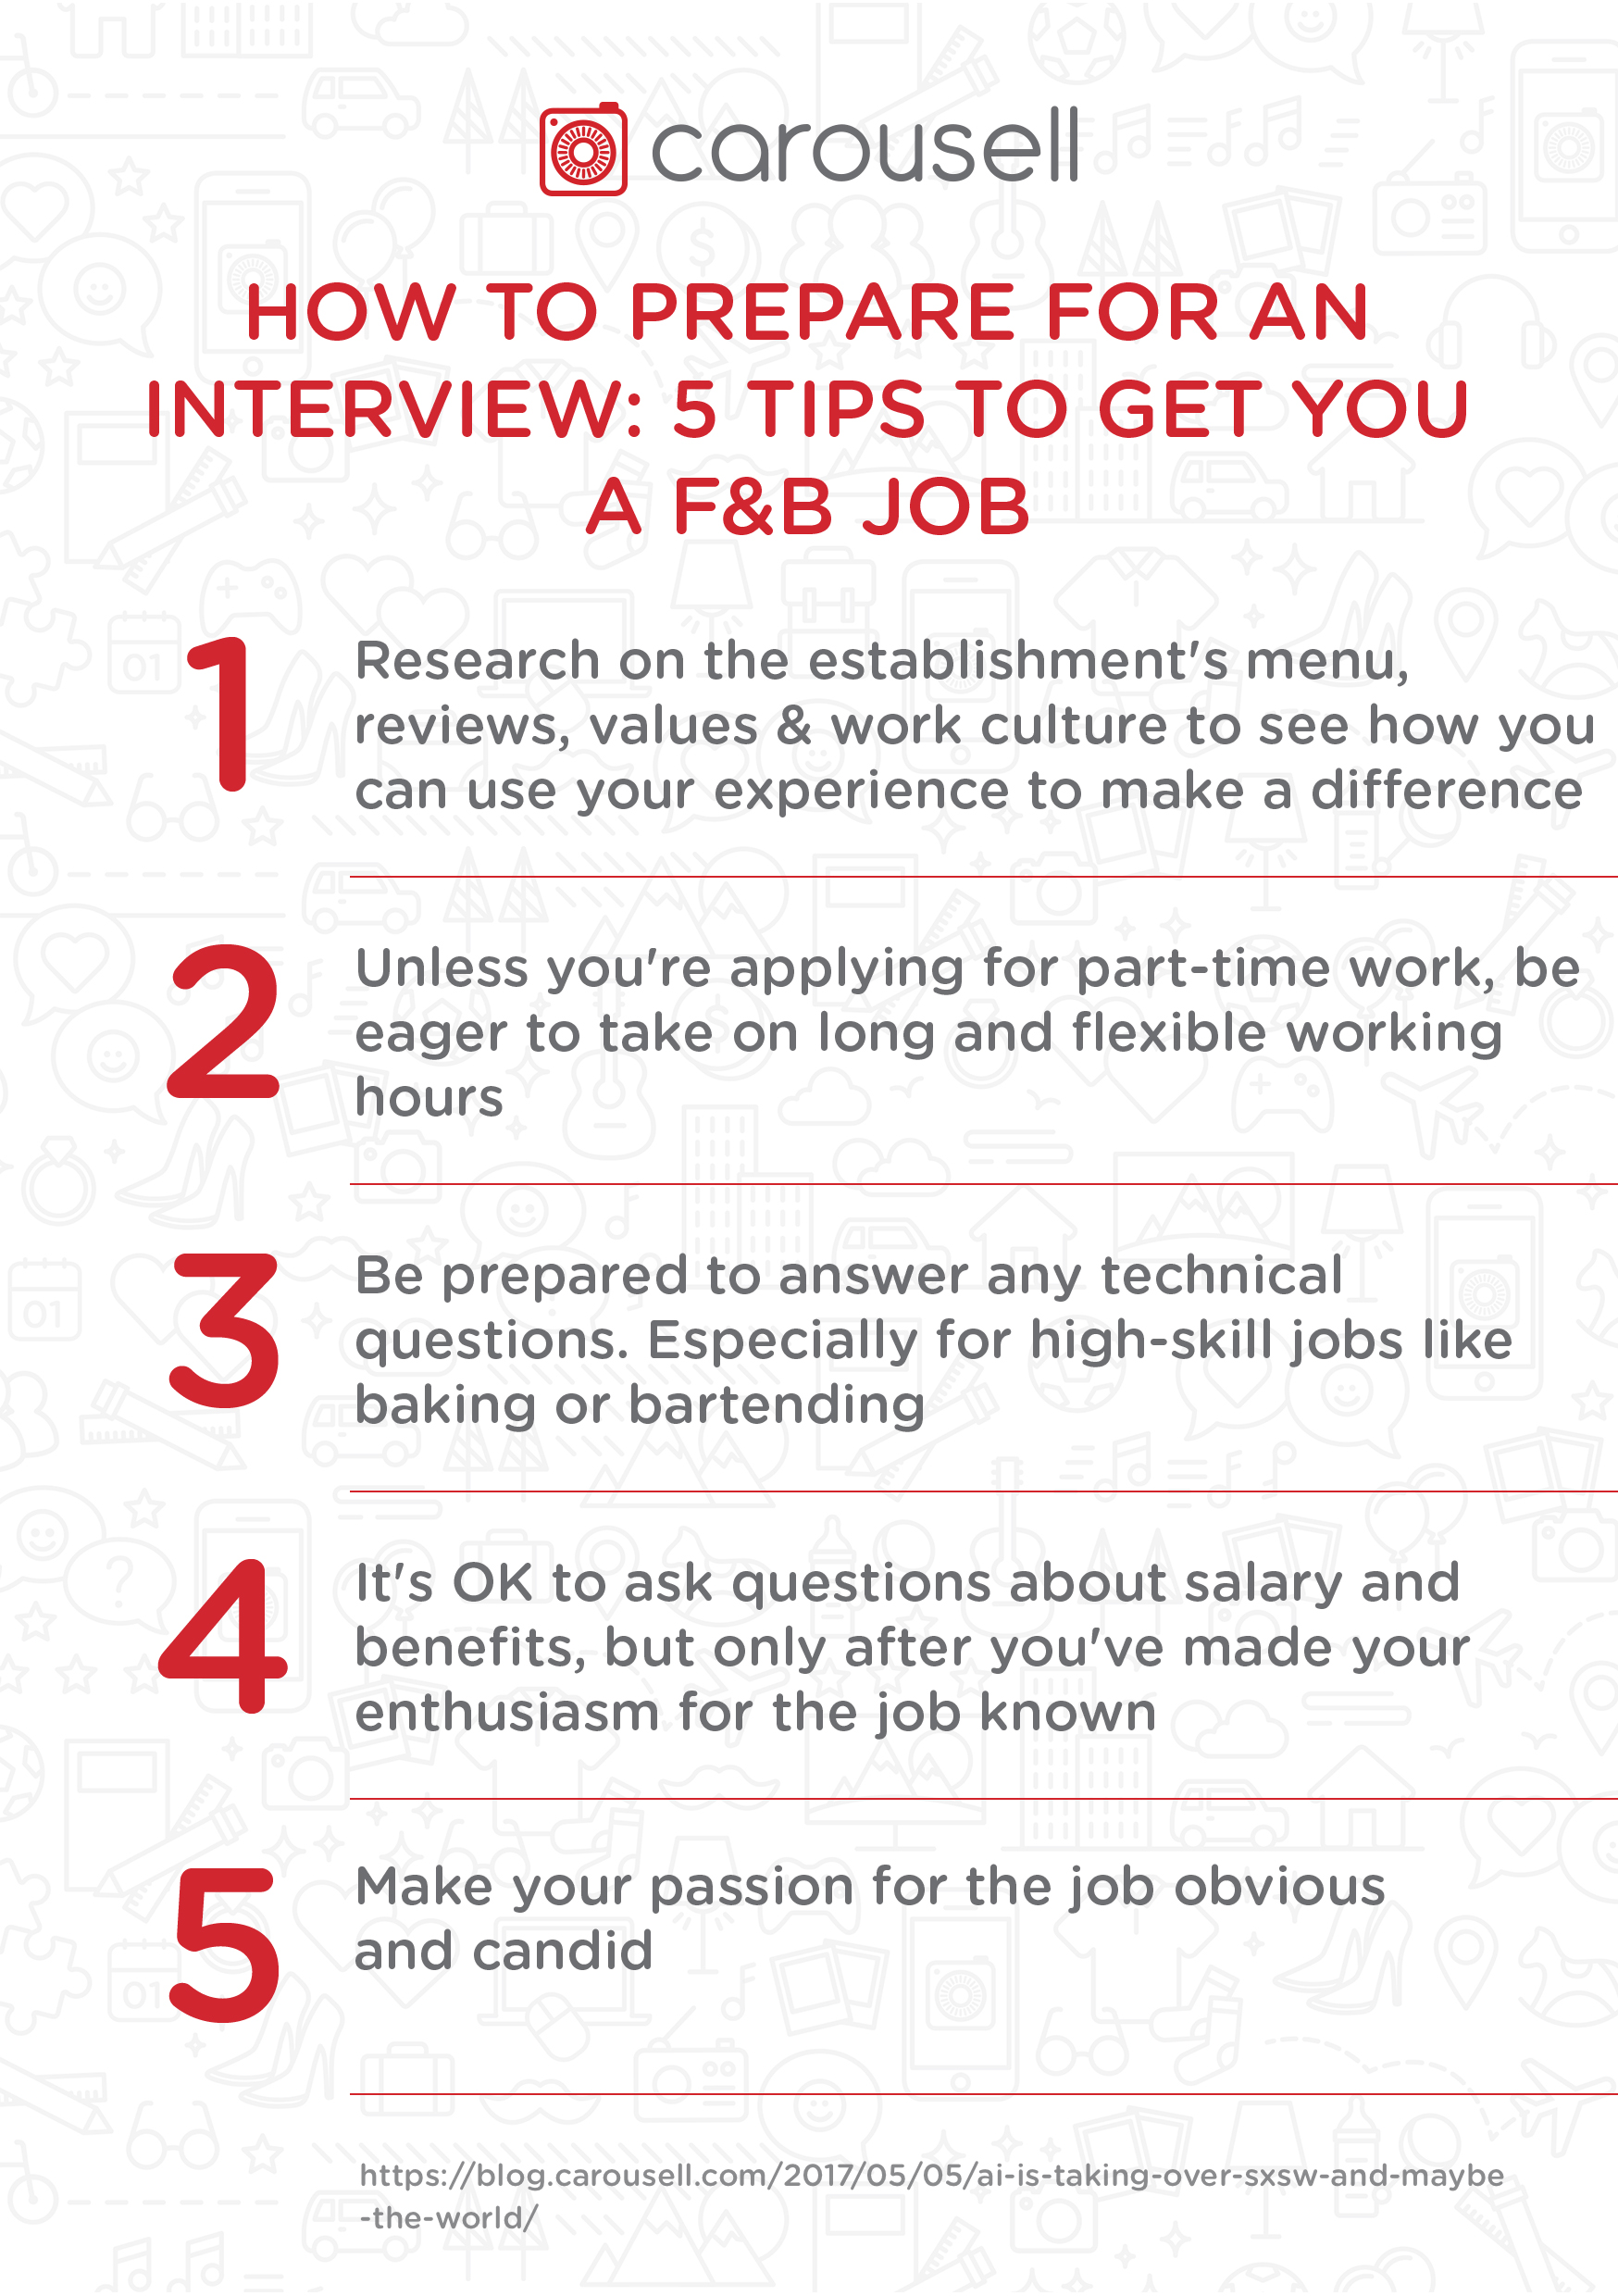 How to Prepare for an Interview 5 Tips to Get You a FB Job Carousell